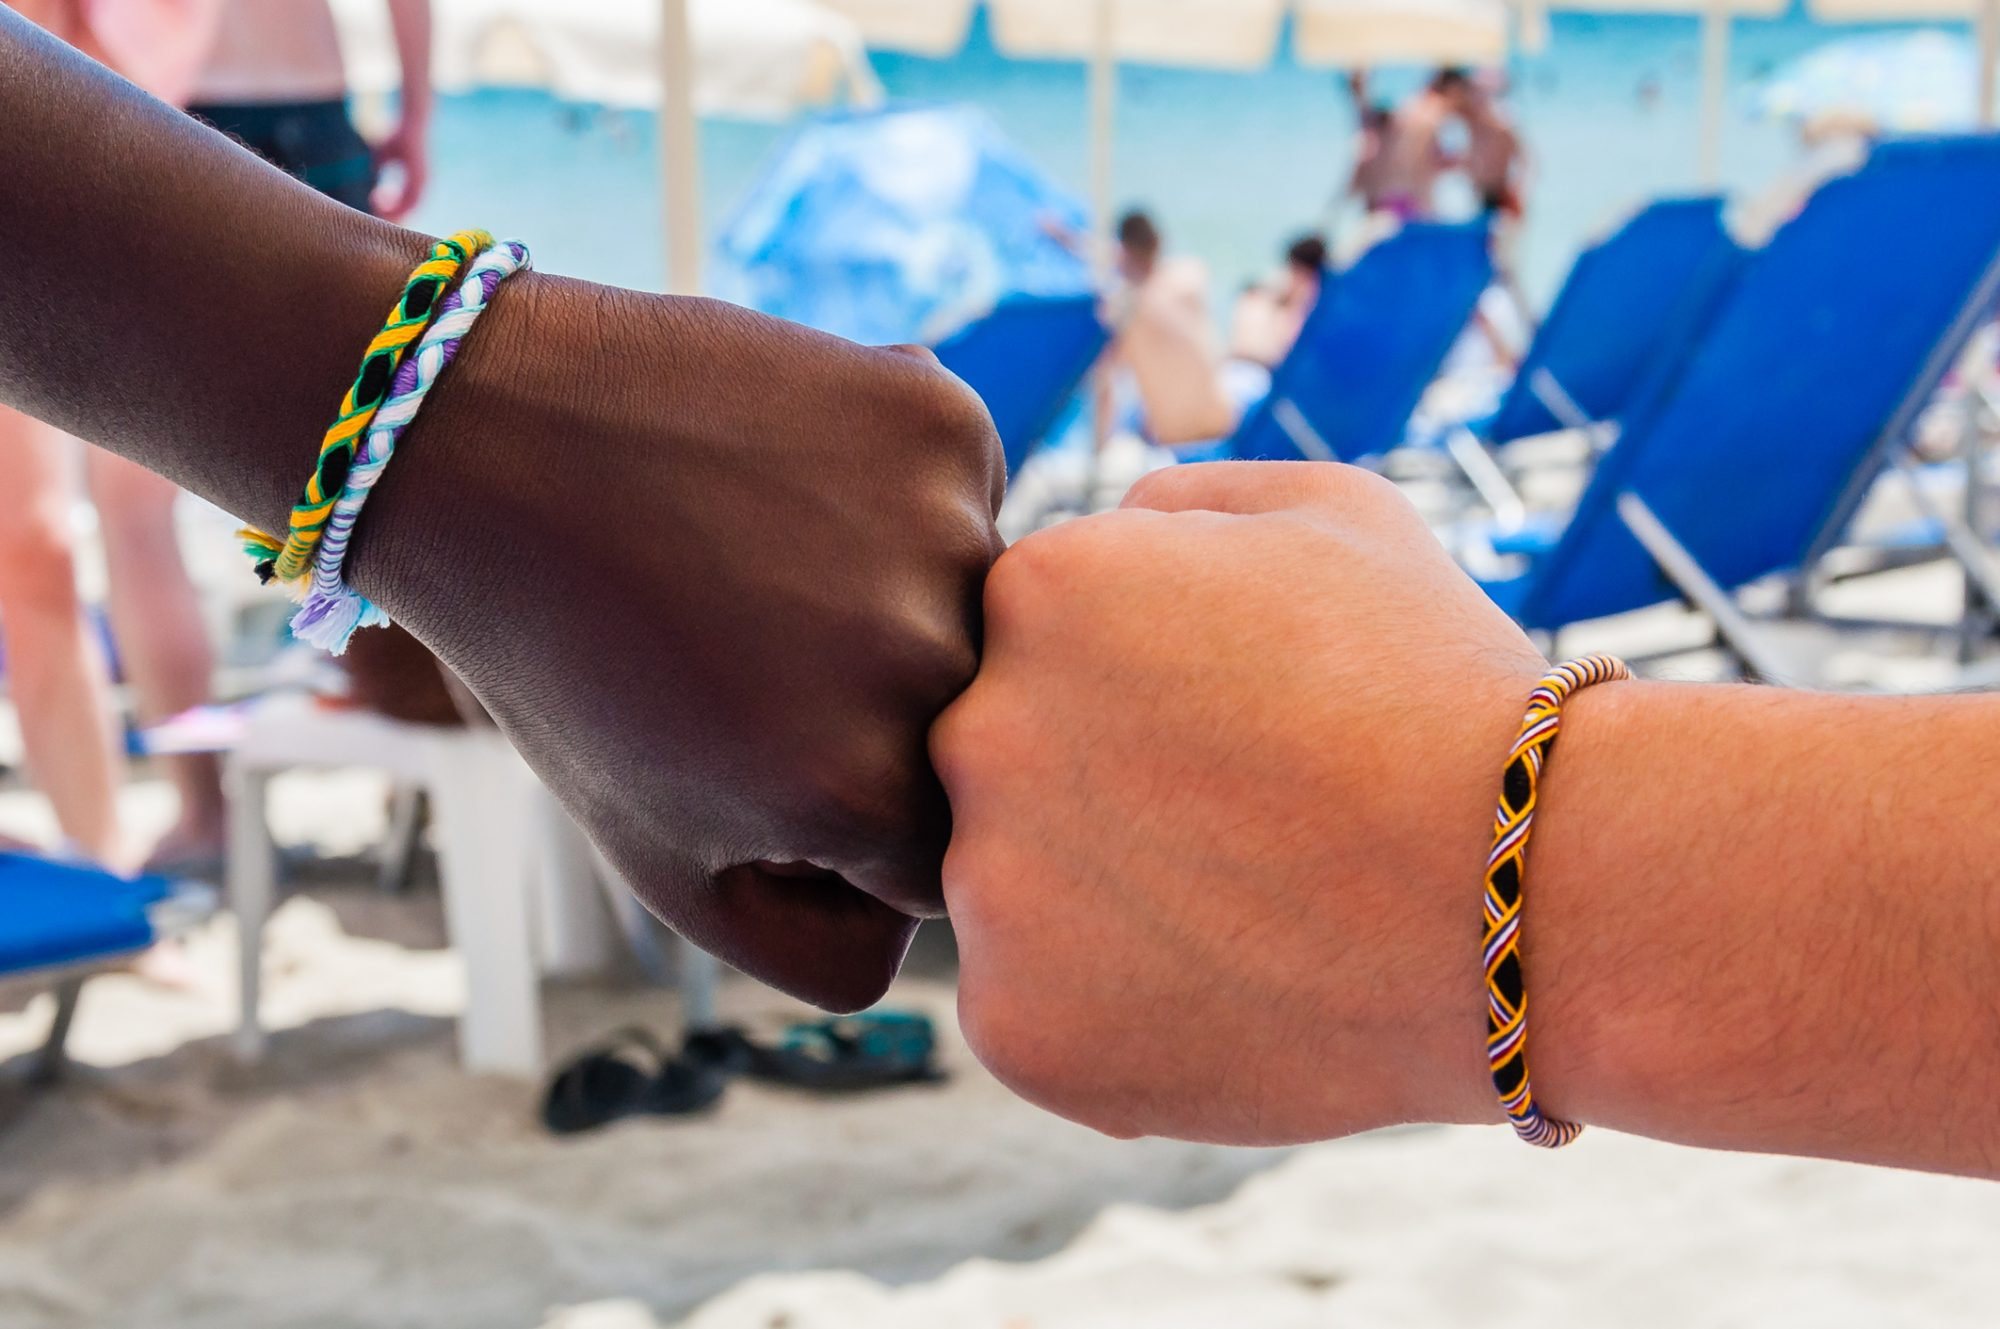 Two fists of two different ethnicity people with braided friendship bracelets